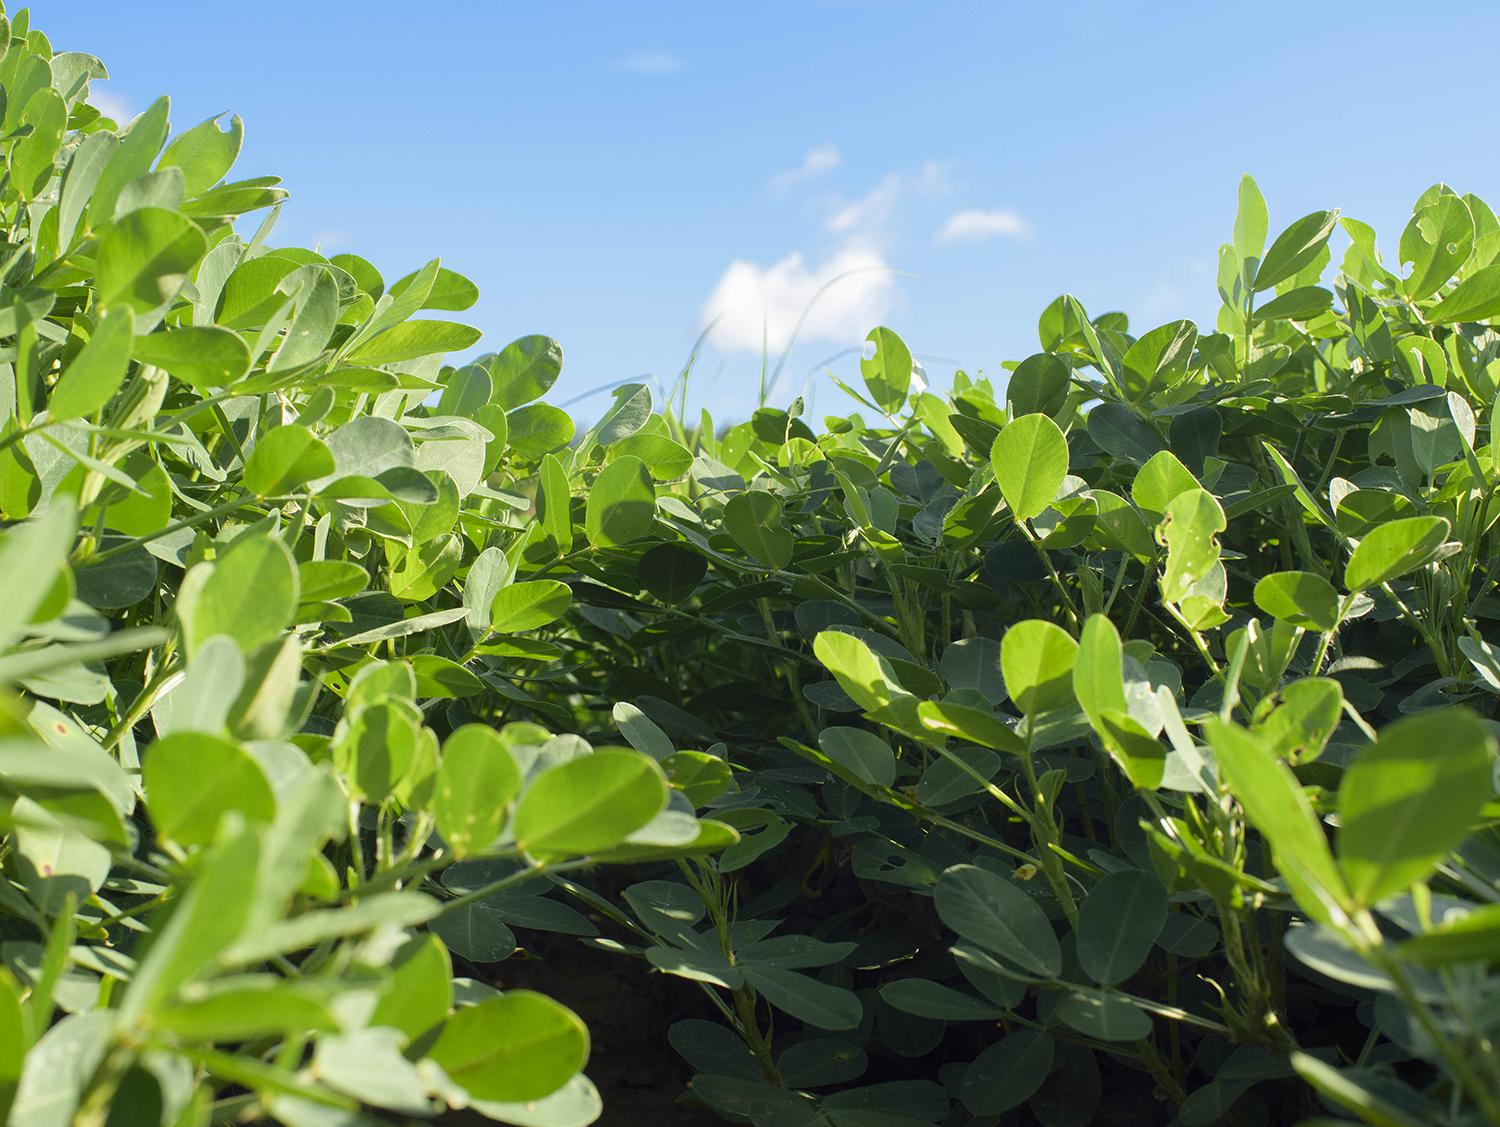 Strong demand for peanuts has encouraged Mississippi growers to plant more of them this year. The U.S. Department of Agriculture projects peanut producers will plant 44,000 acres this year compared with 39,000 in 2016. (File photo by MSU Extension Service/Kevin Hudson)